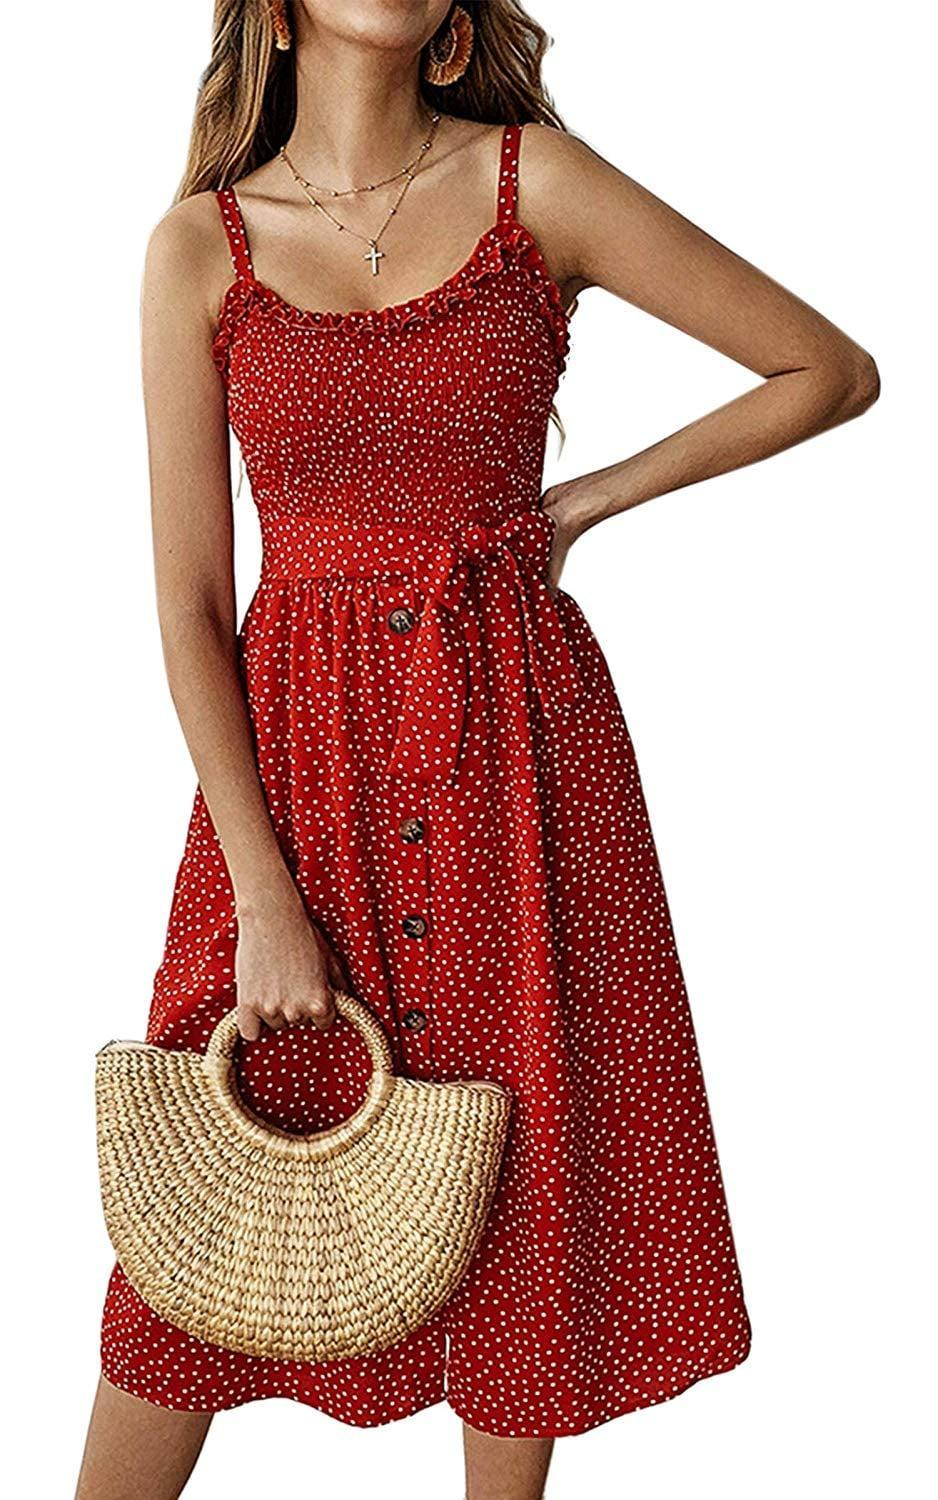 """<p>This <a href=""""https://www.popsugar.com/buy/Angashion-Summer-Dress-453541?p_name=Angashion%20Summer%20Dress&retailer=amazon.com&pid=453541&price=24&evar1=fab%3Aus&evar9=44705274&evar98=https%3A%2F%2Fwww.popsugar.com%2Ffashion%2Fphoto-gallery%2F44705274%2Fimage%2F47271388%2FAngashion-Summer-Dress&list1=shopping%2Ctravel%2Cfall%20fashion%2Cdresses%2Cfall%2Cday%20dresses%2Ctravel%20style%2Cspring%20fashion%2Csummer%20fashion&prop13=api&pdata=1"""" class=""""link rapid-noclick-resp"""" rel=""""nofollow noopener"""" target=""""_blank"""" data-ylk=""""slk:Angashion Summer Dress"""">Angashion Summer Dress</a> ($24) comes in lots of different colors.</p>"""